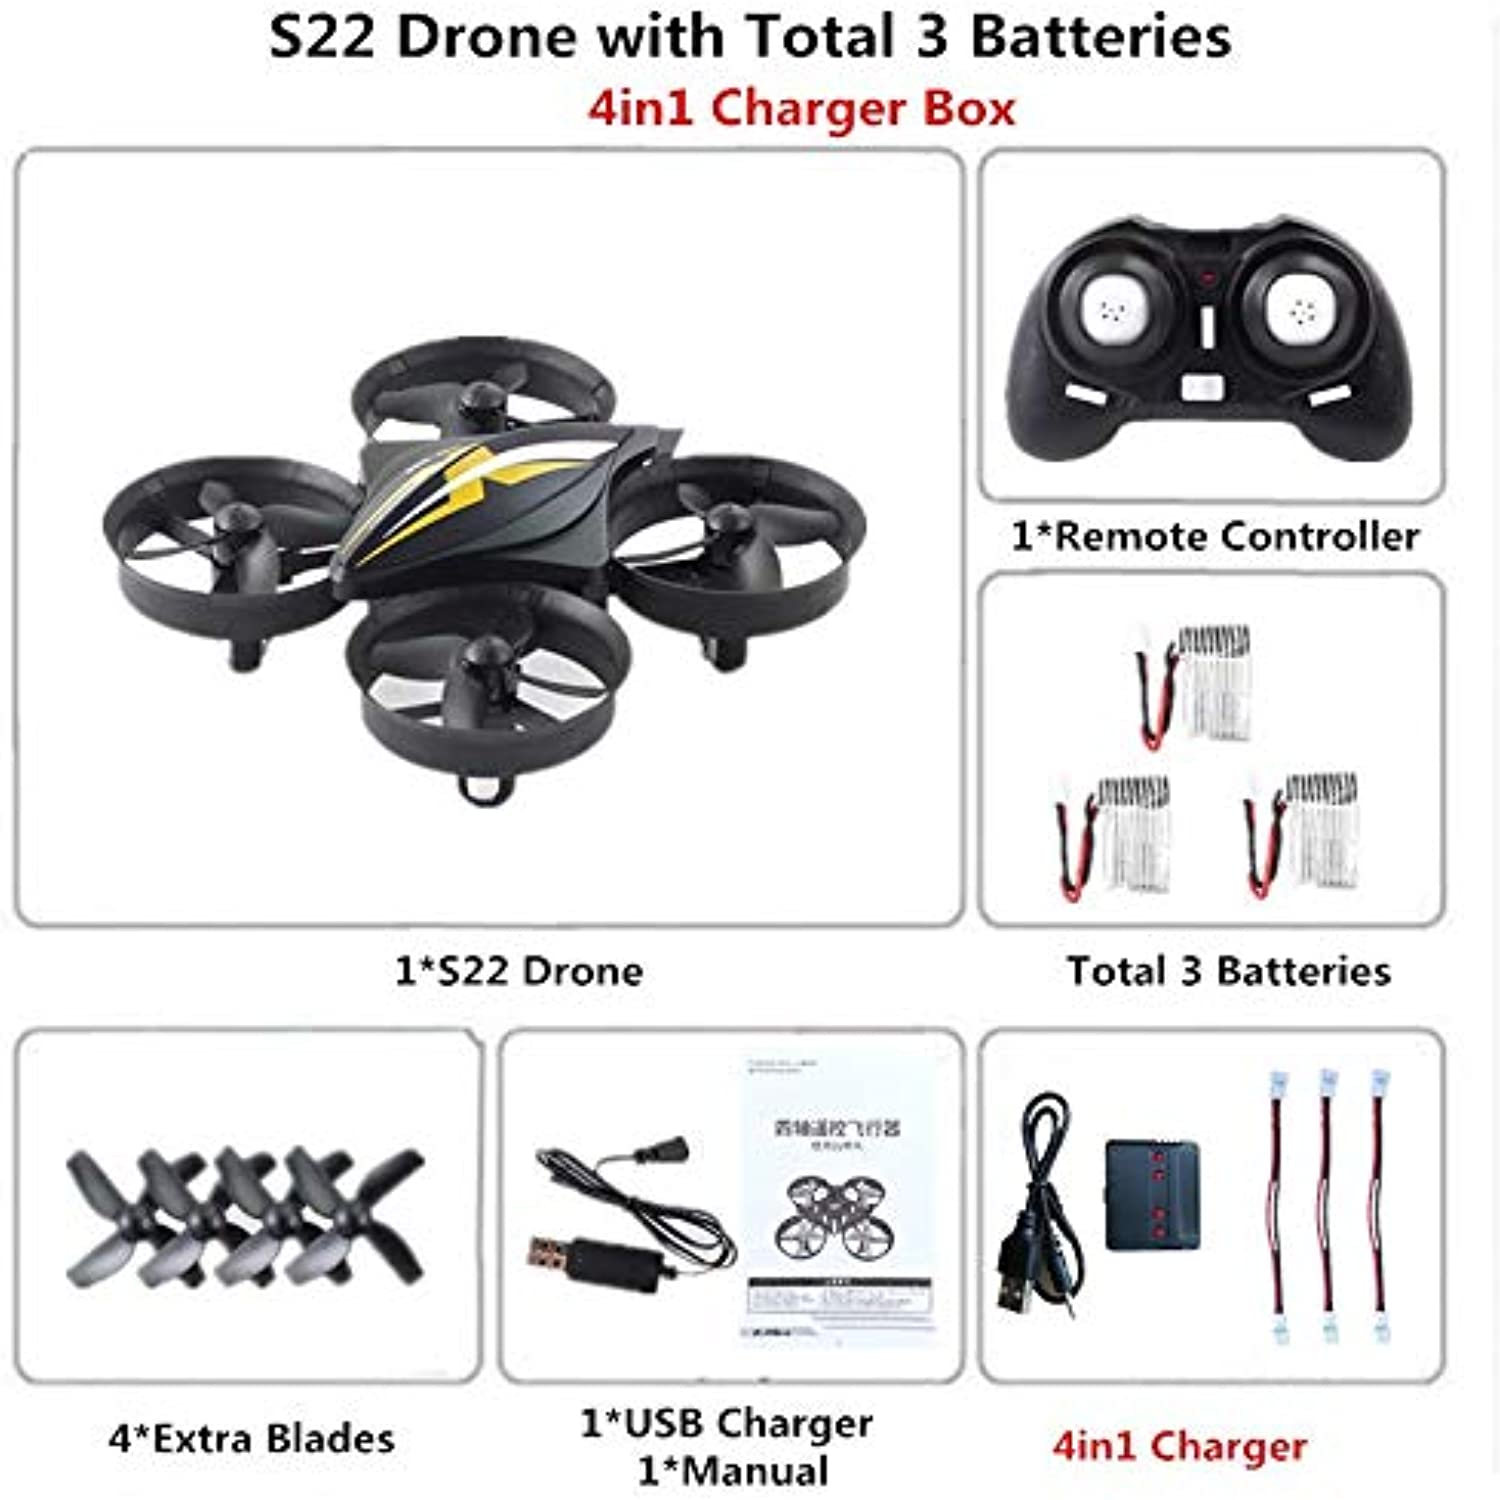 Generic RC Mini Drone Dron Quadcopter Remote Control Quadrocopter RC Helicopter 2.4G 6 Axis Gyro Drones with Headless Mode VS H36 E010 B4